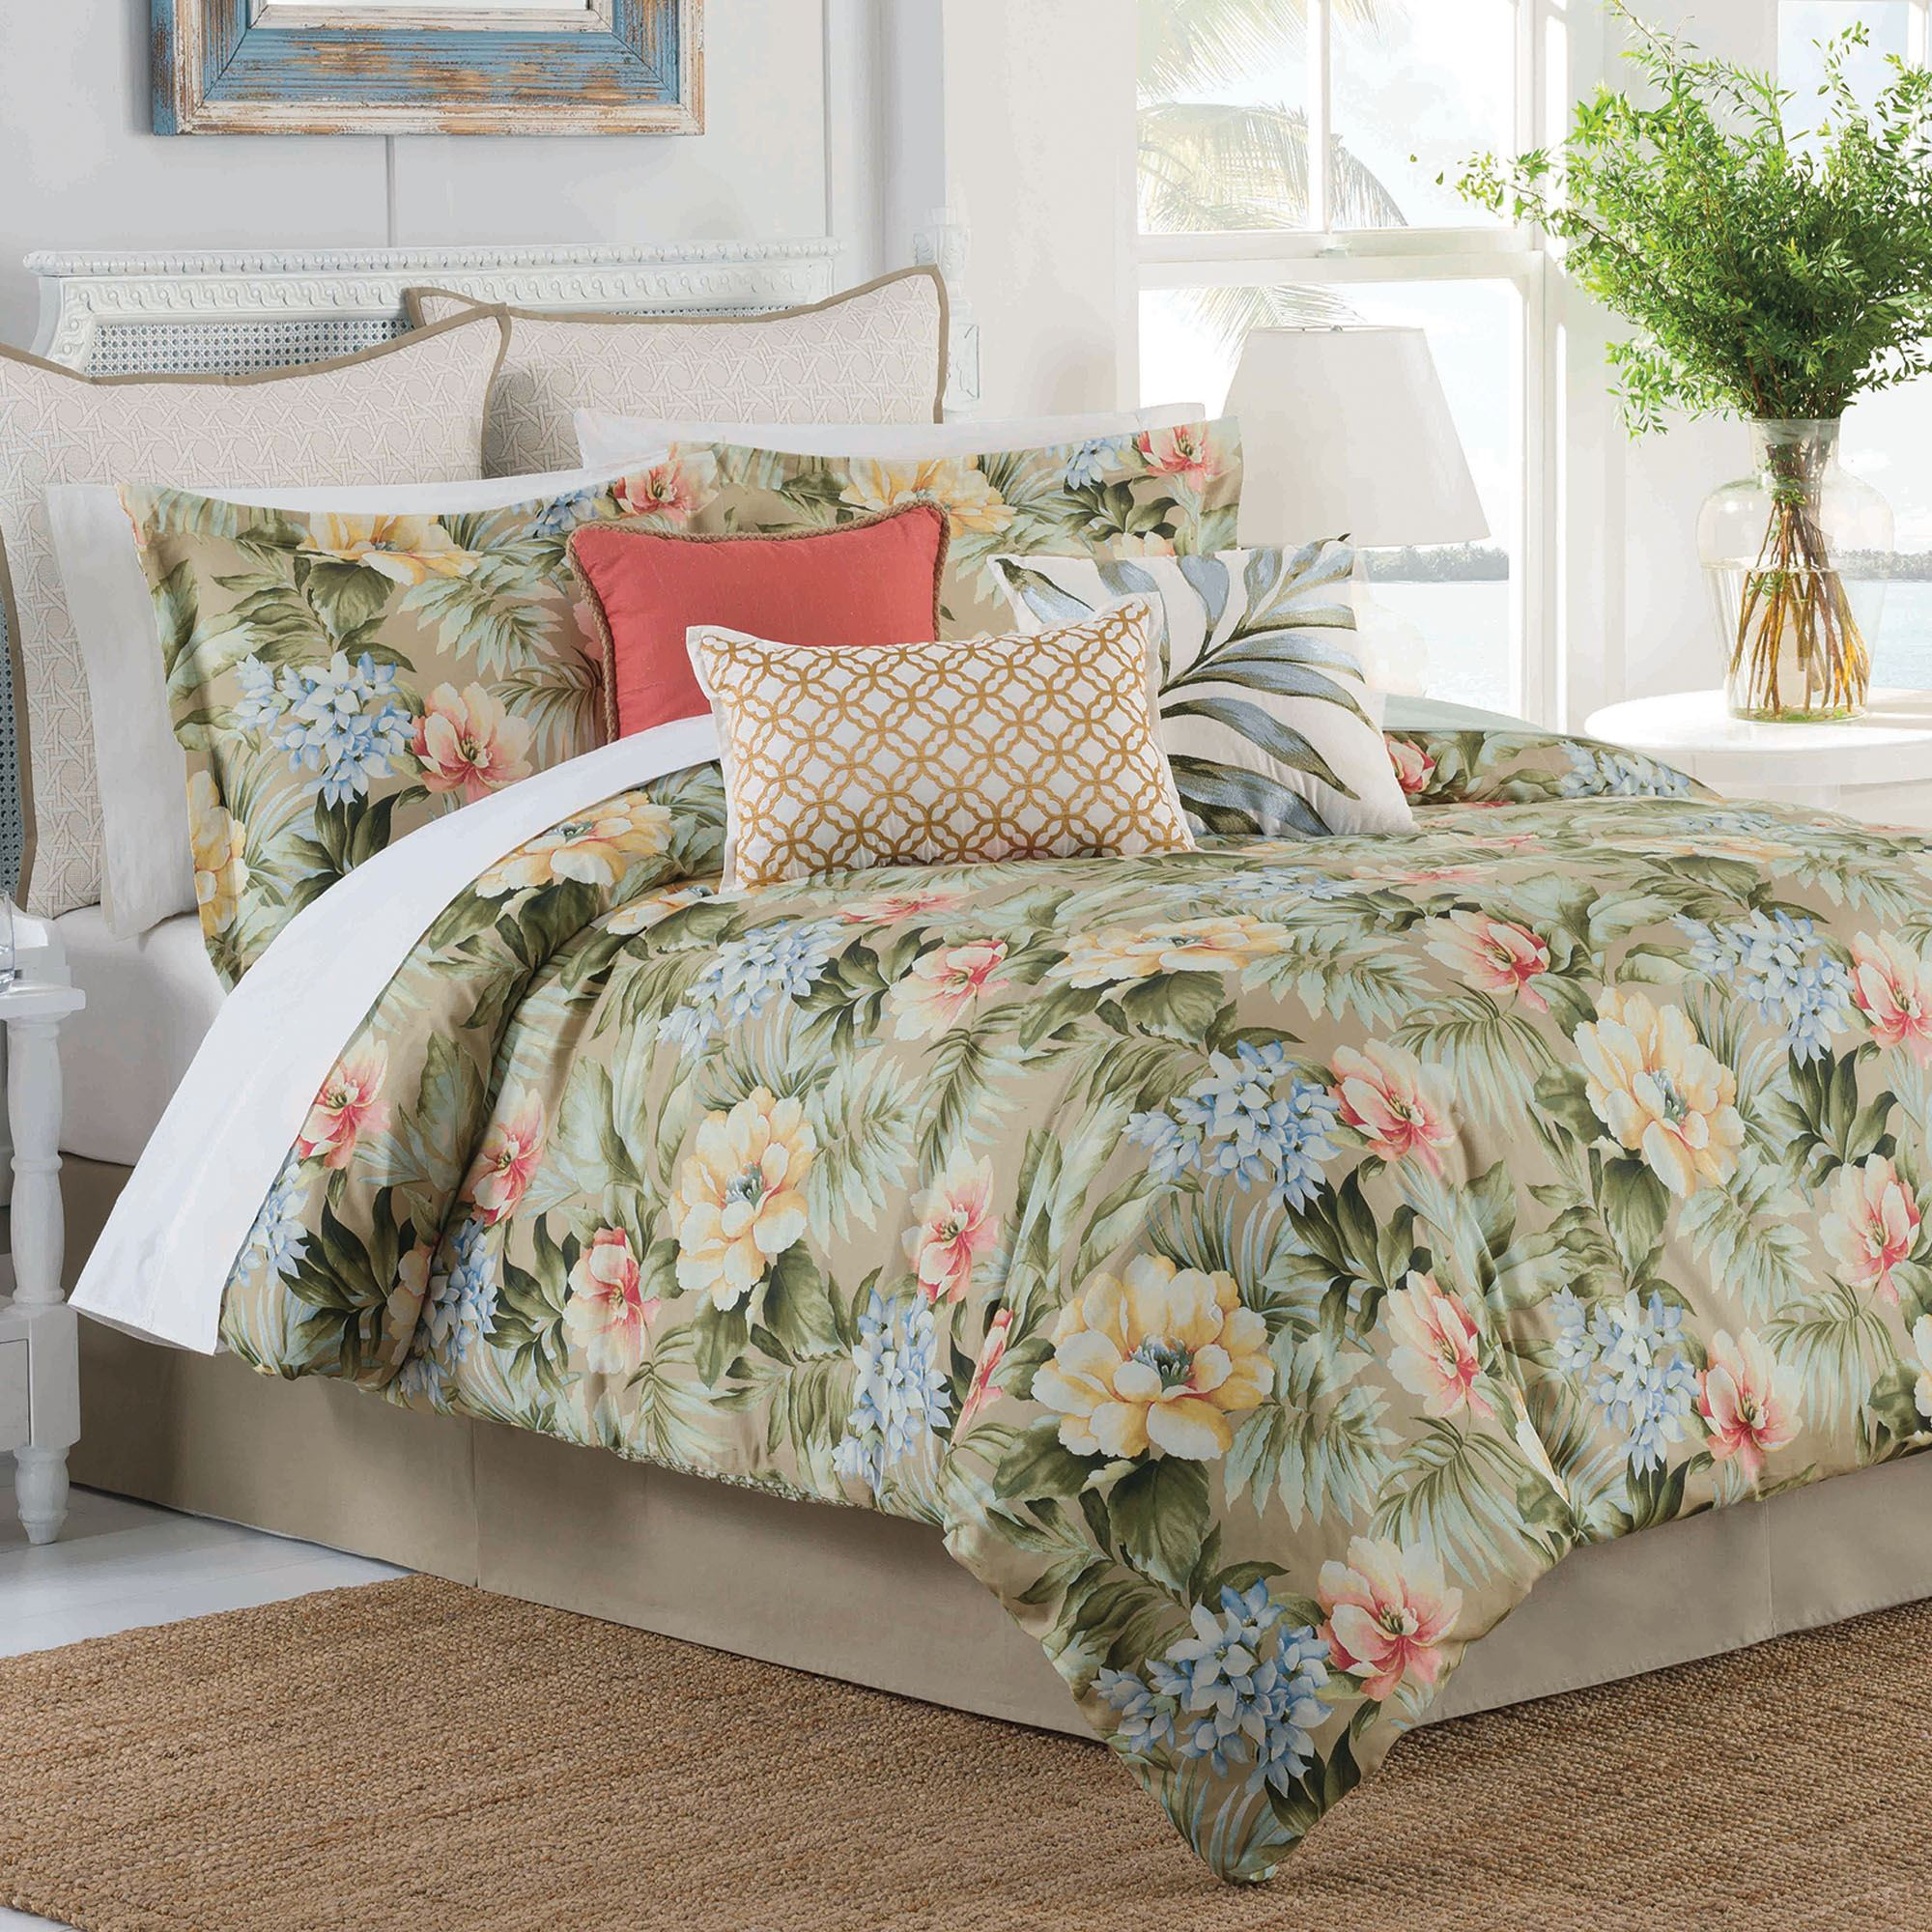 coastal bahamian nights com hawaiian tropical bedding and beach bahamiannights bed oceanstyles